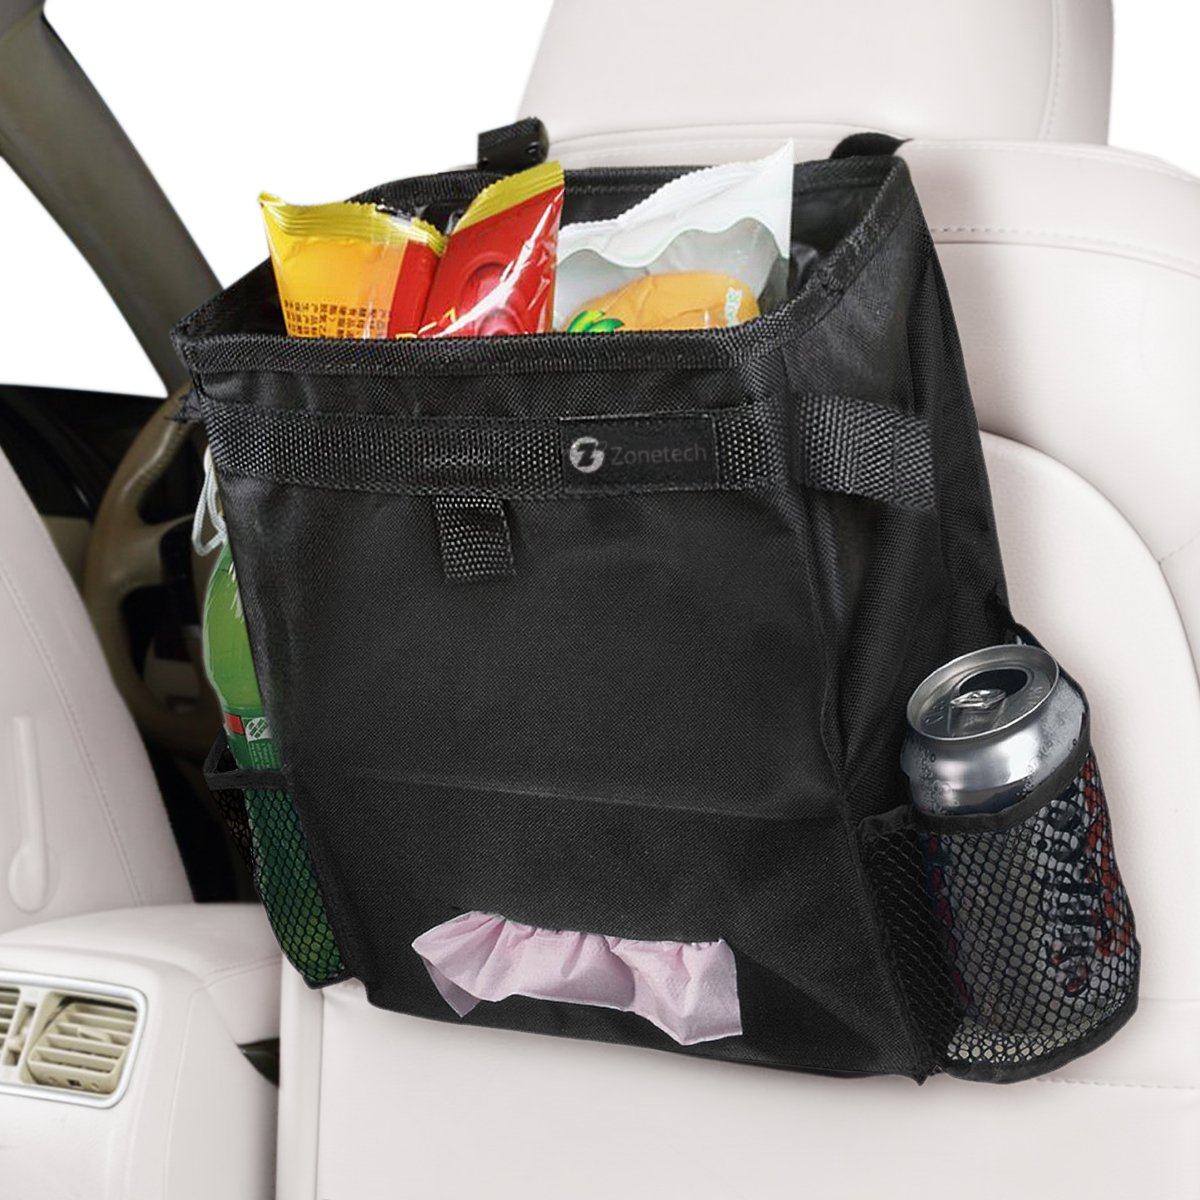 Durable Fully Leak Proof Vehicle Litter Bag and Practical Car Tissue Dispenser//Baby Wipe Holder Zone Tech 2-in-1 Classic Black Car Organizer